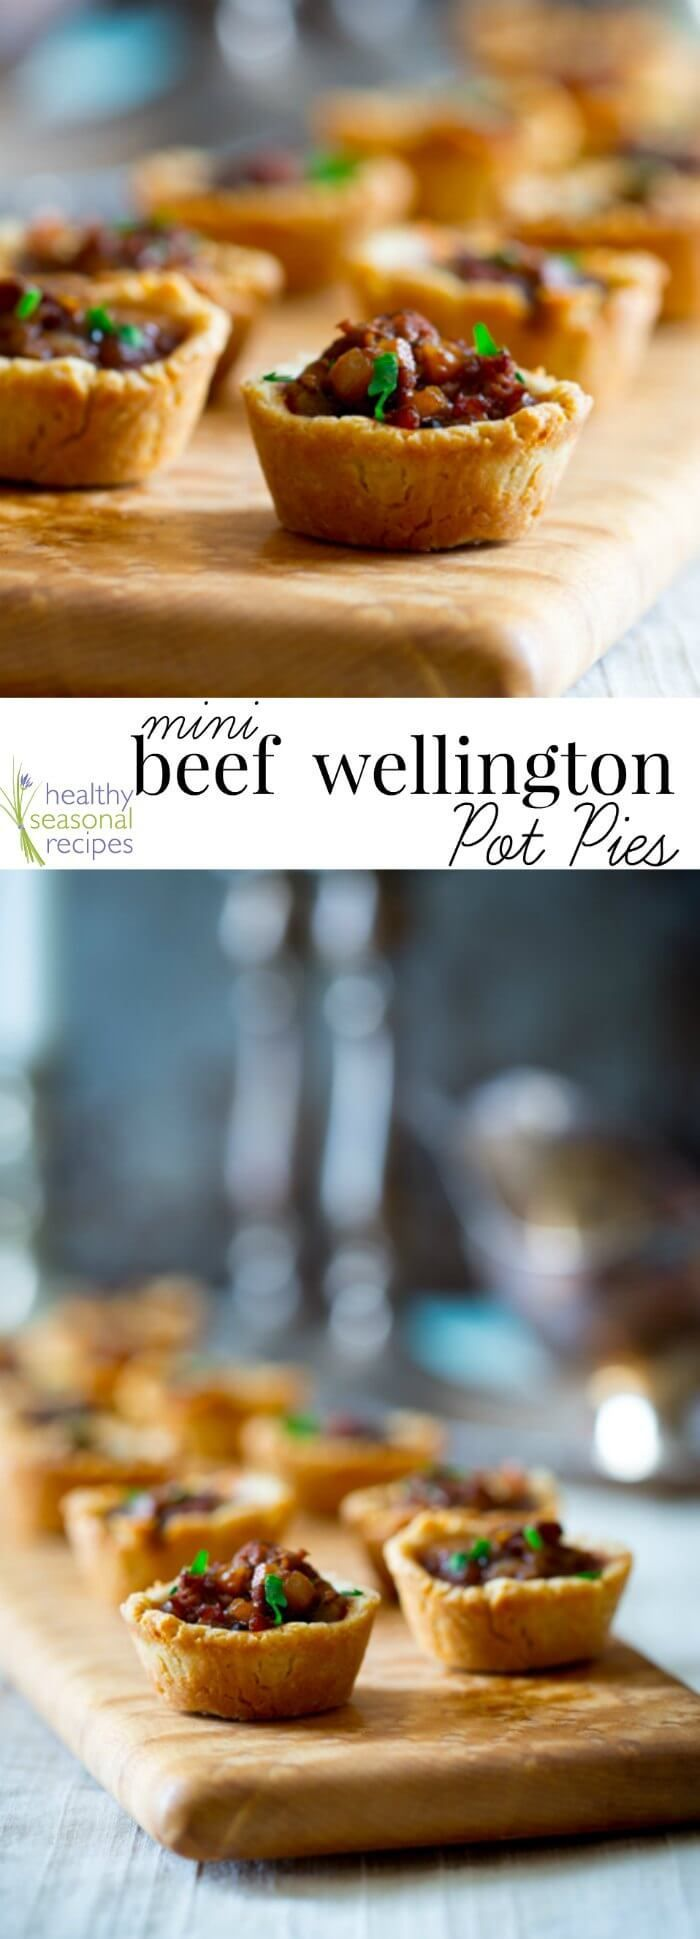 Blog post at Healthy Seasonal Recipes : Beef Wellington inspired mini pot pies with mushrooms and savory gravy in flaky home-made tartlet shells. A tasty appetizer to serve for a D[..]